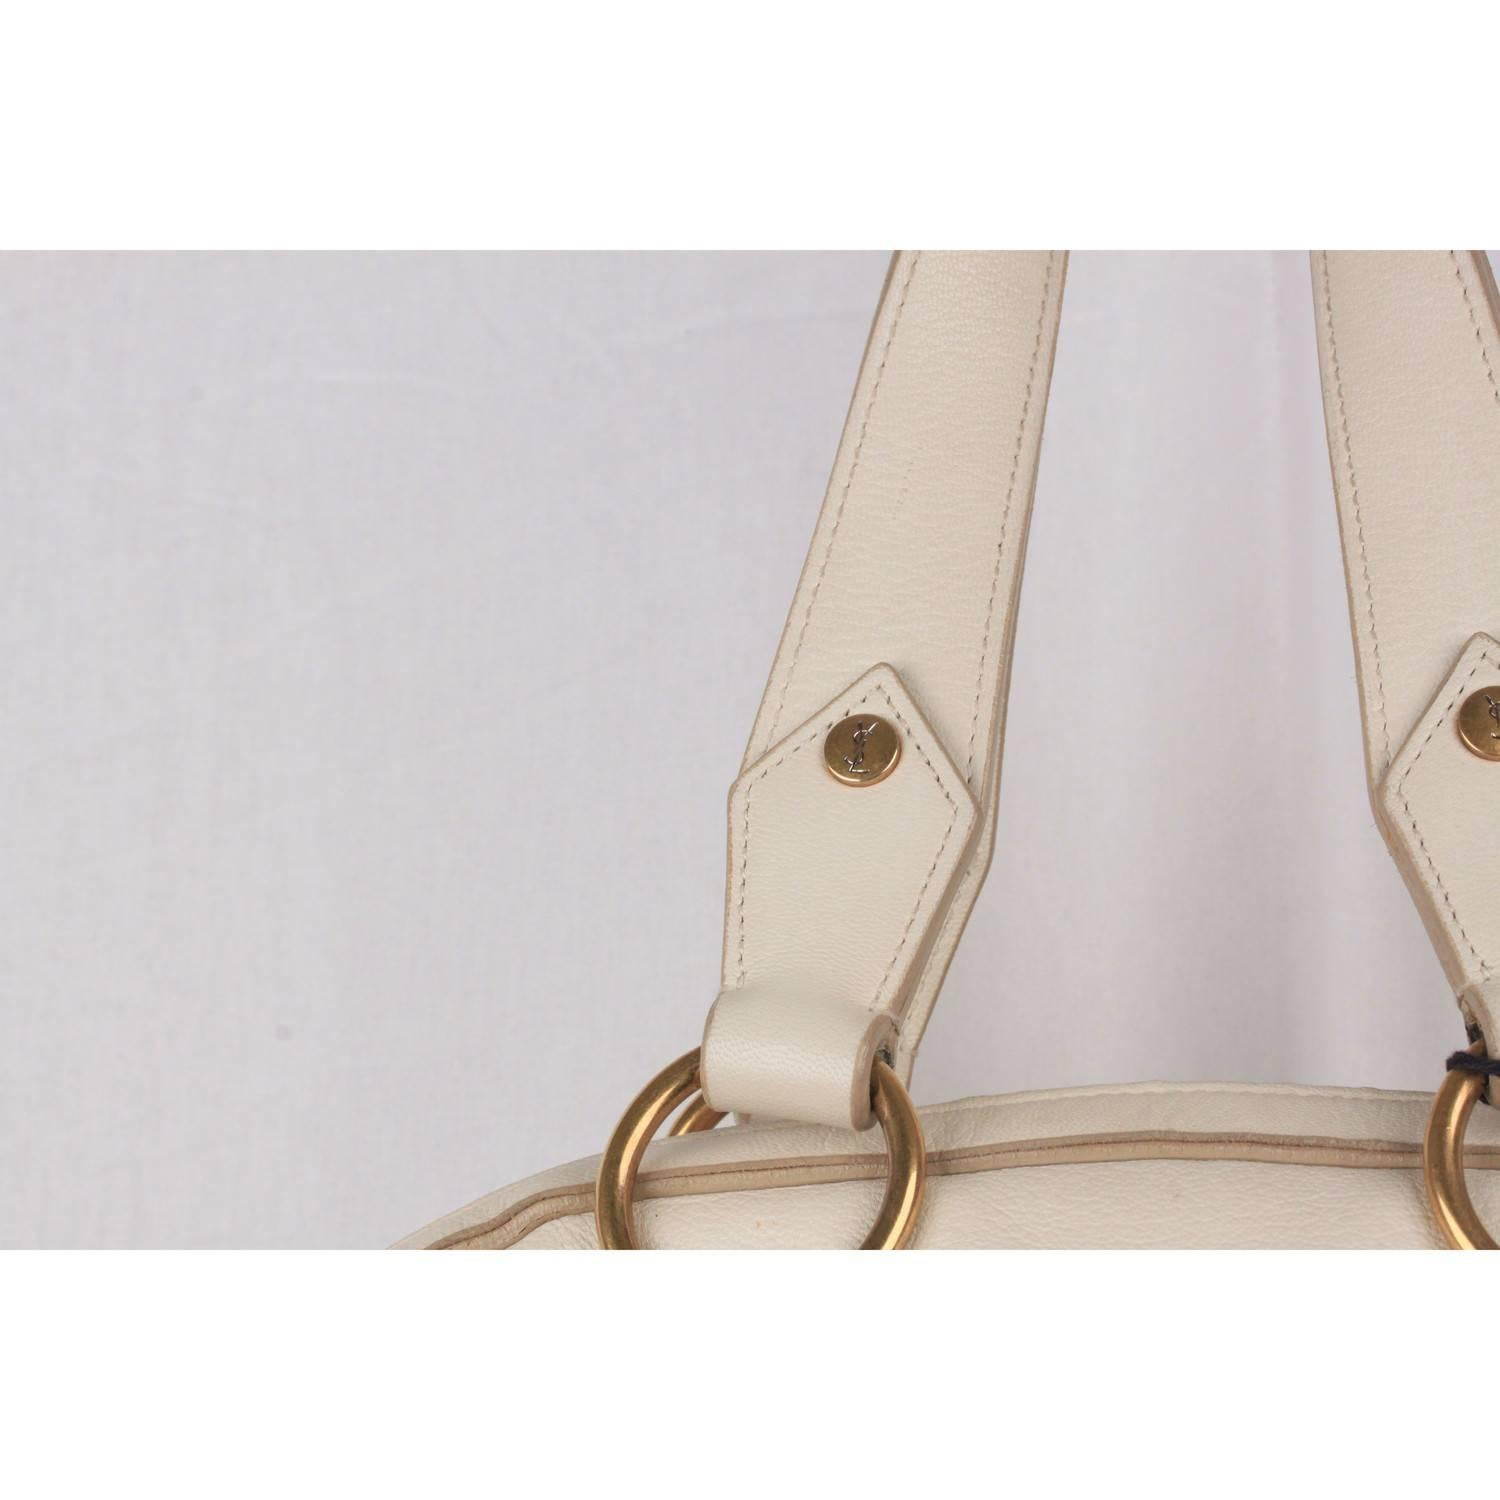 0ce4afc4f4 YVES SAINT LAURENT White Leather MUSE BAG Tote For Sale at 1stdibs